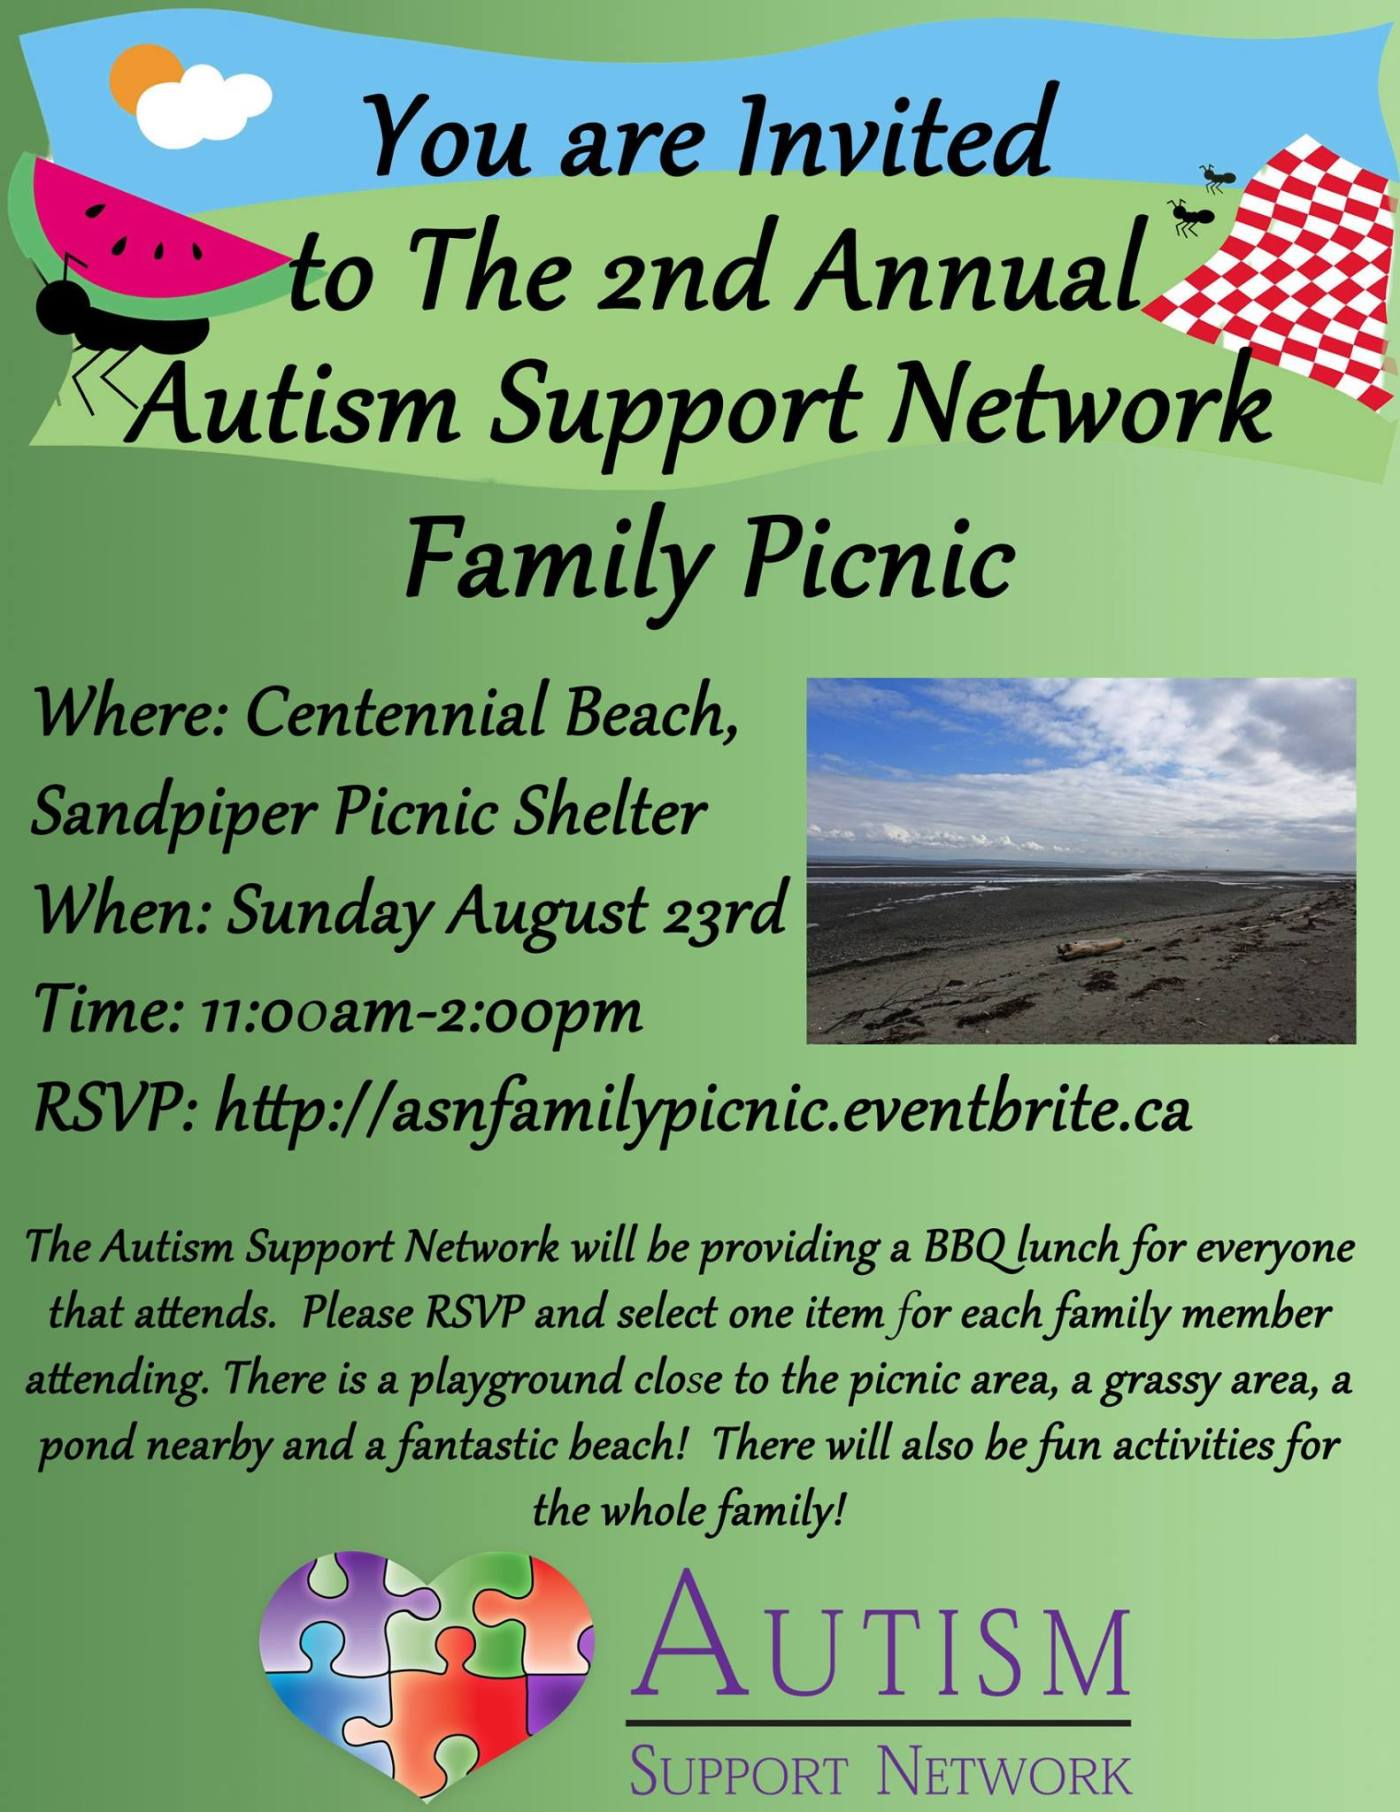 2nd Annual Autism Support Network Family Picnic – Autism Support